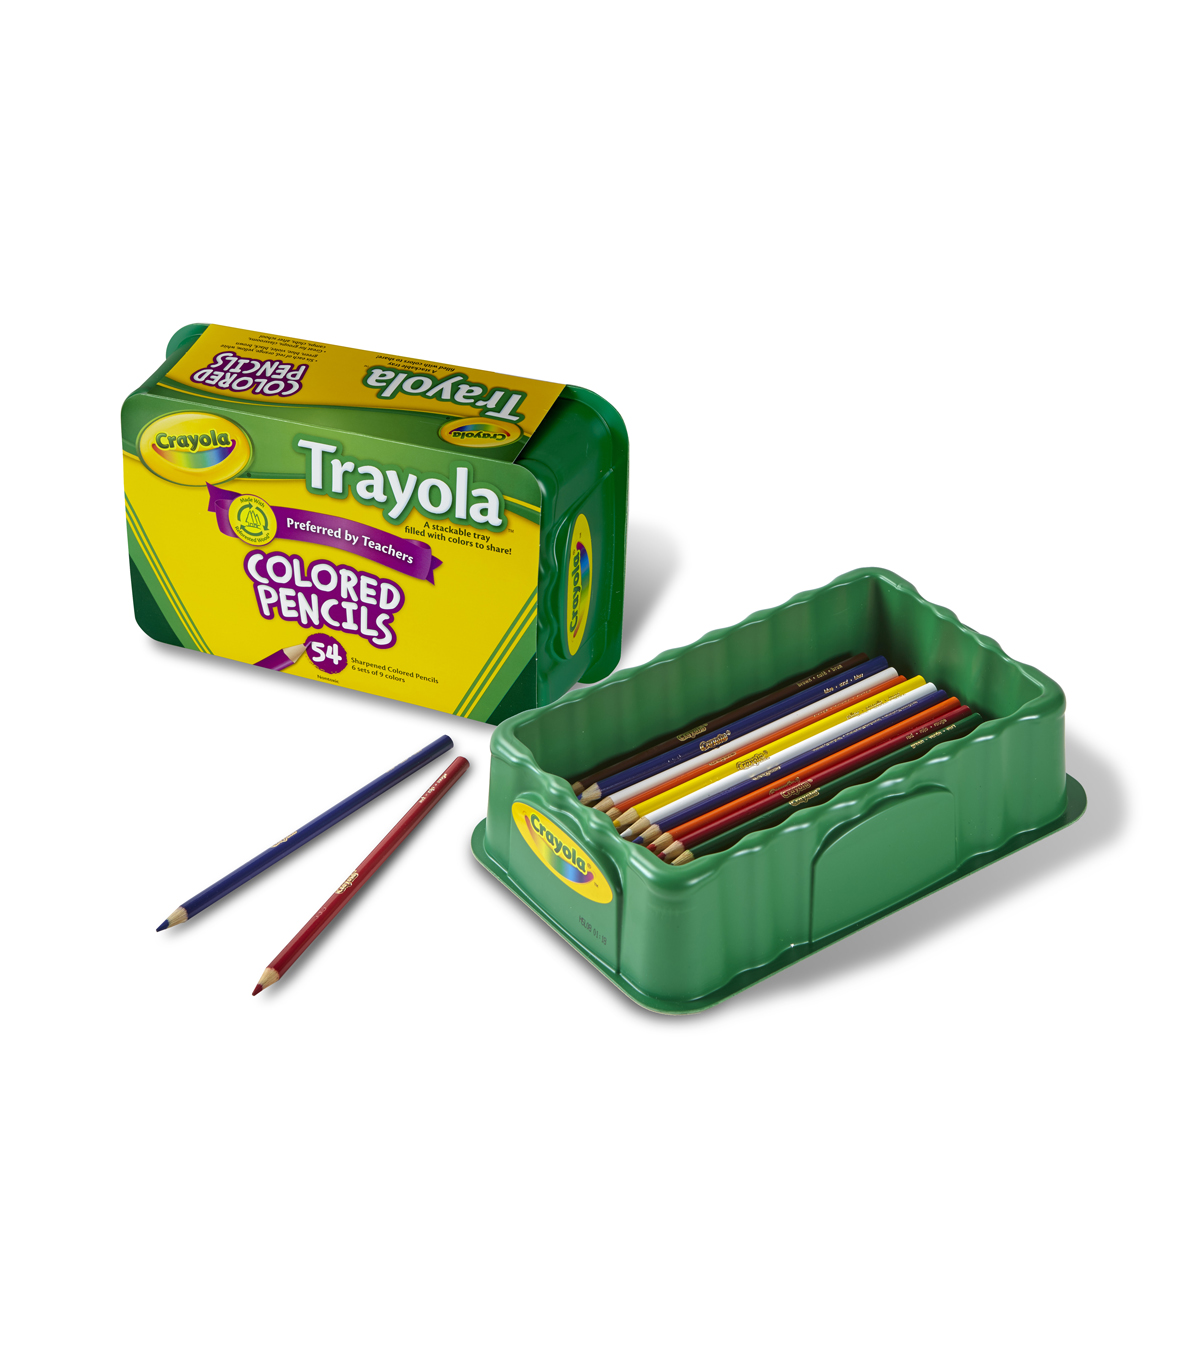 Busy Kids Learning Crayola Trayola Colored Pencils